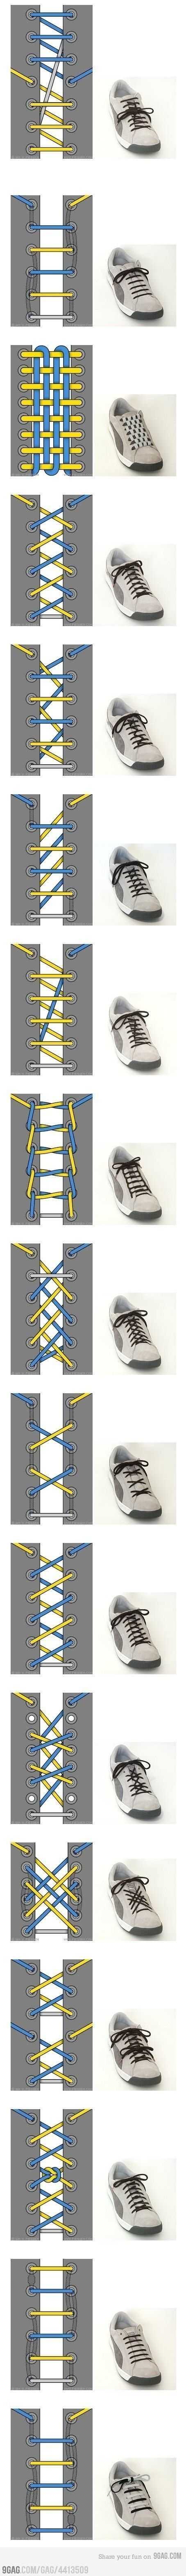 17 Ways To Tie Your Shoelace: Idea, Stuff, Style, Tie Shoes, Ties, Diy, Kid